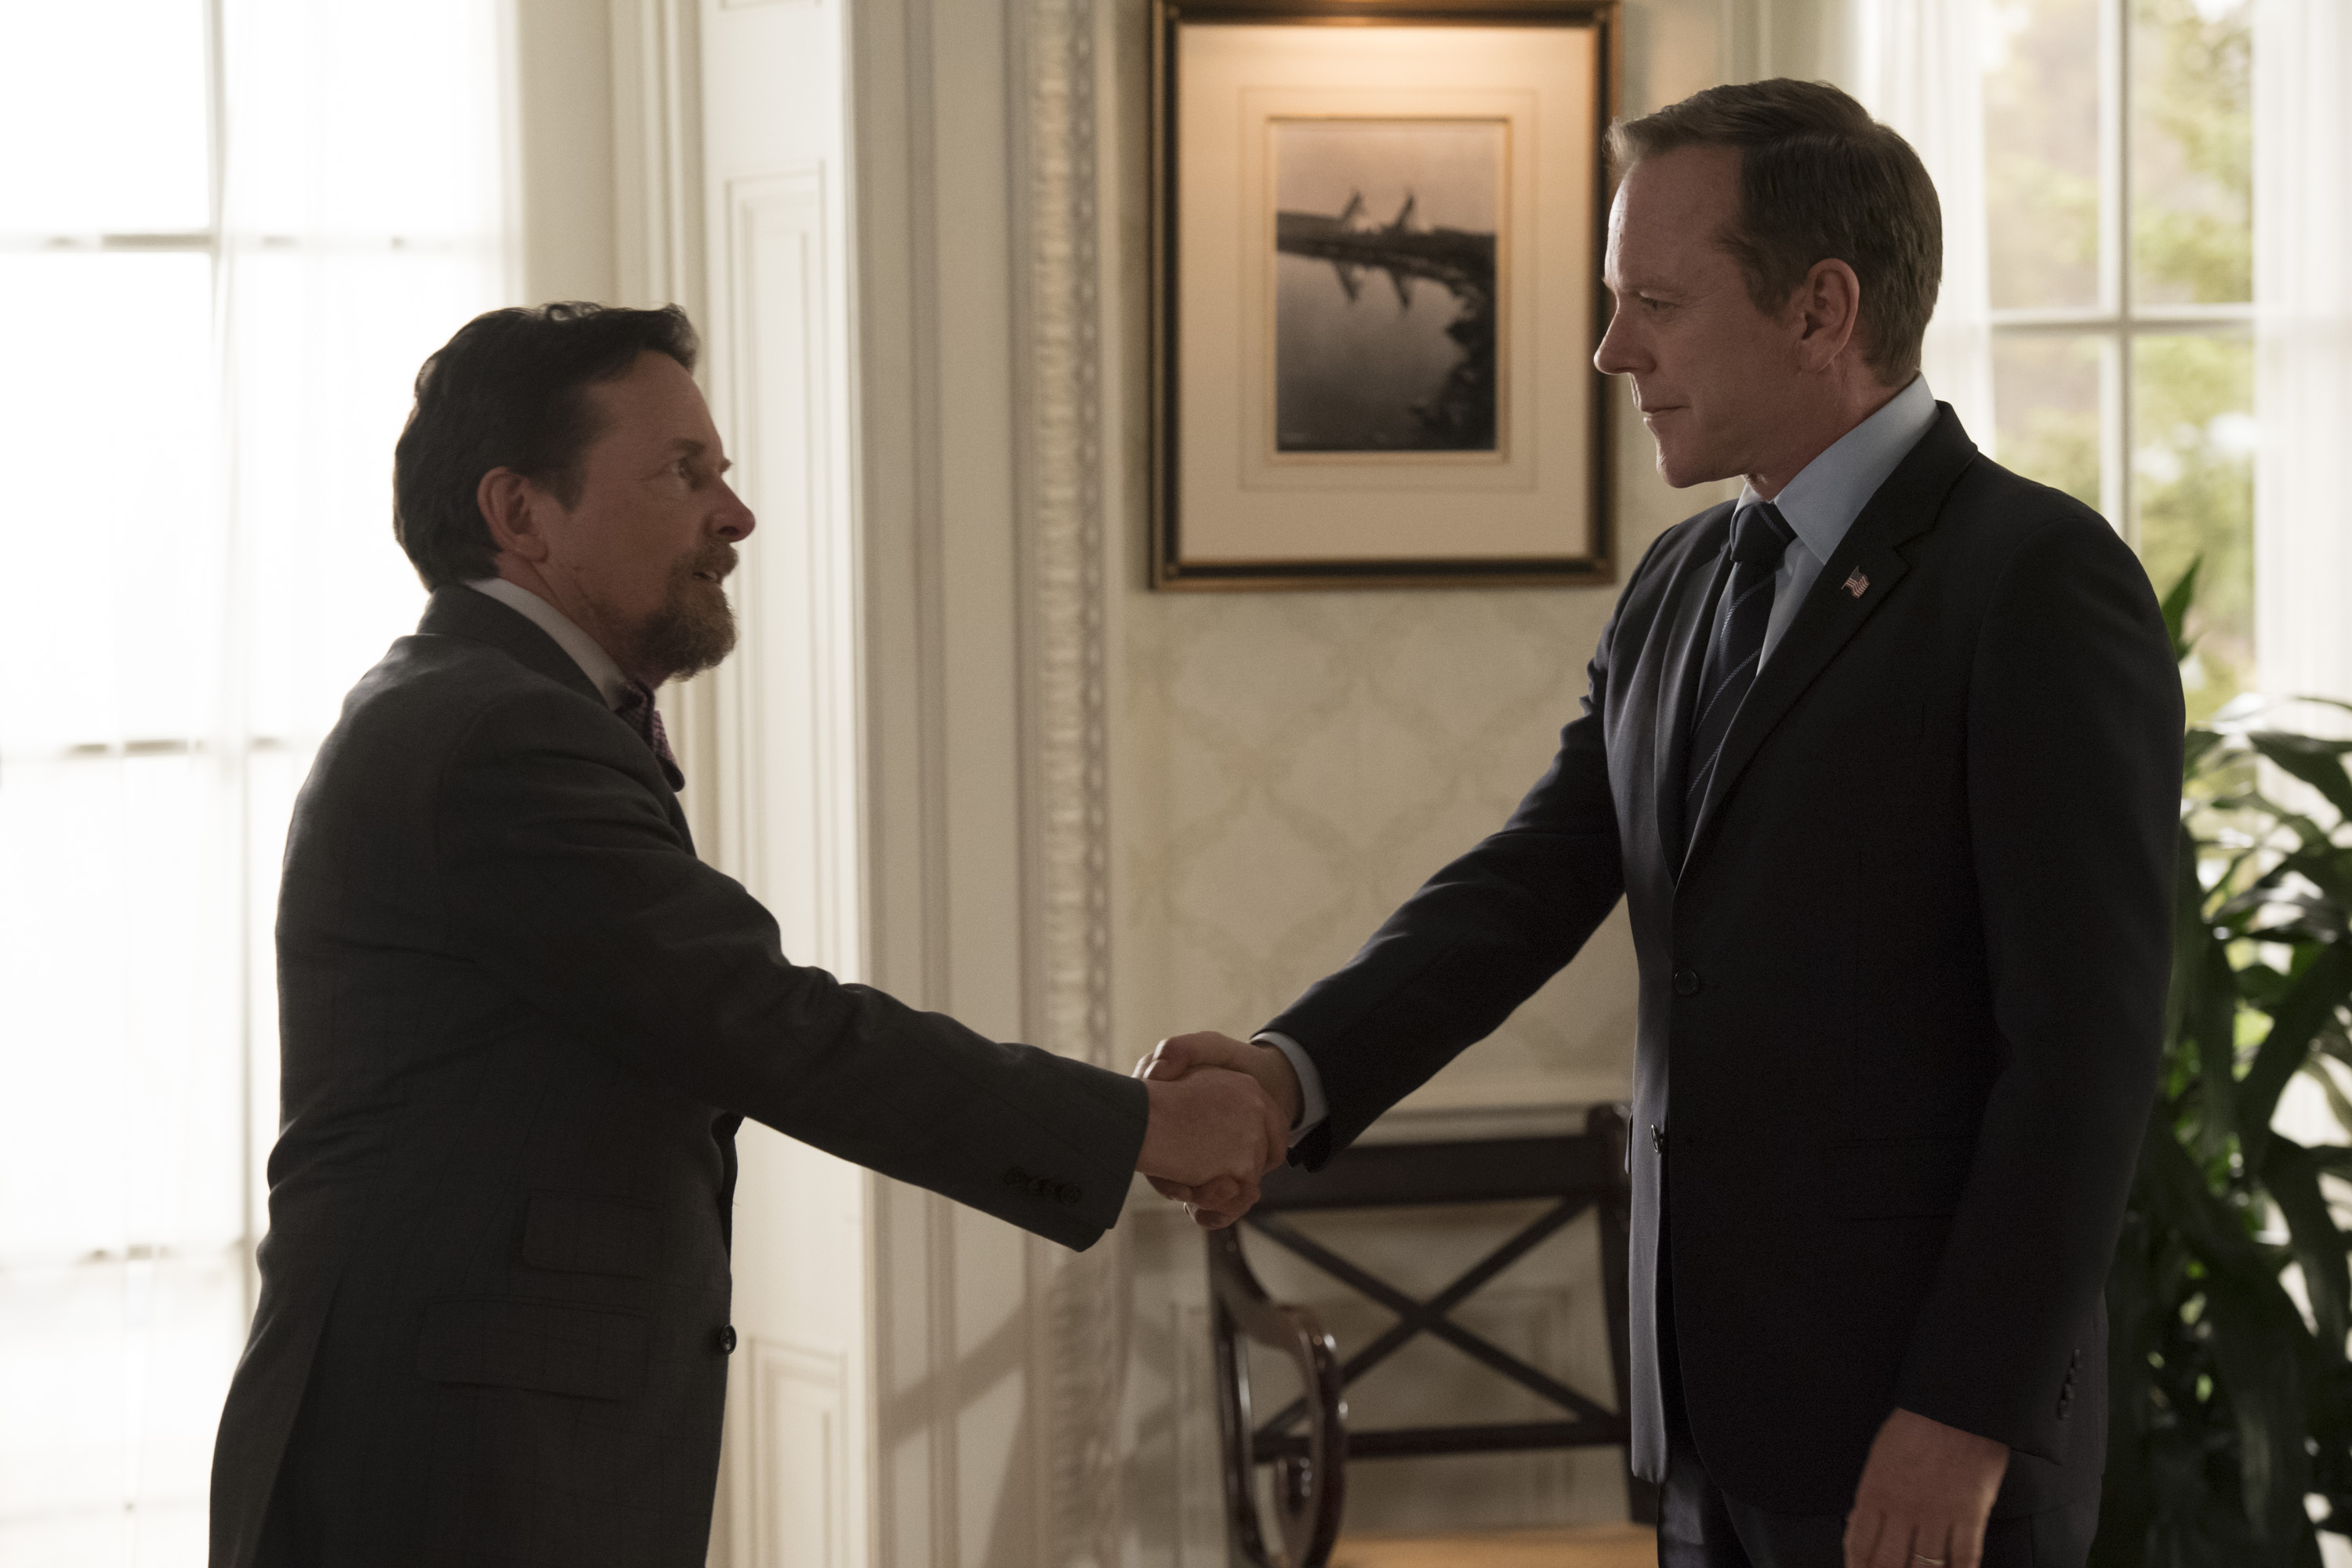 """MICHAEL J FOX KIEFER SUTHERLAND Episode 218 """"Kirkman Agonistes"""" Air Date 04 18 2018 4658 Add to Cart Download"""